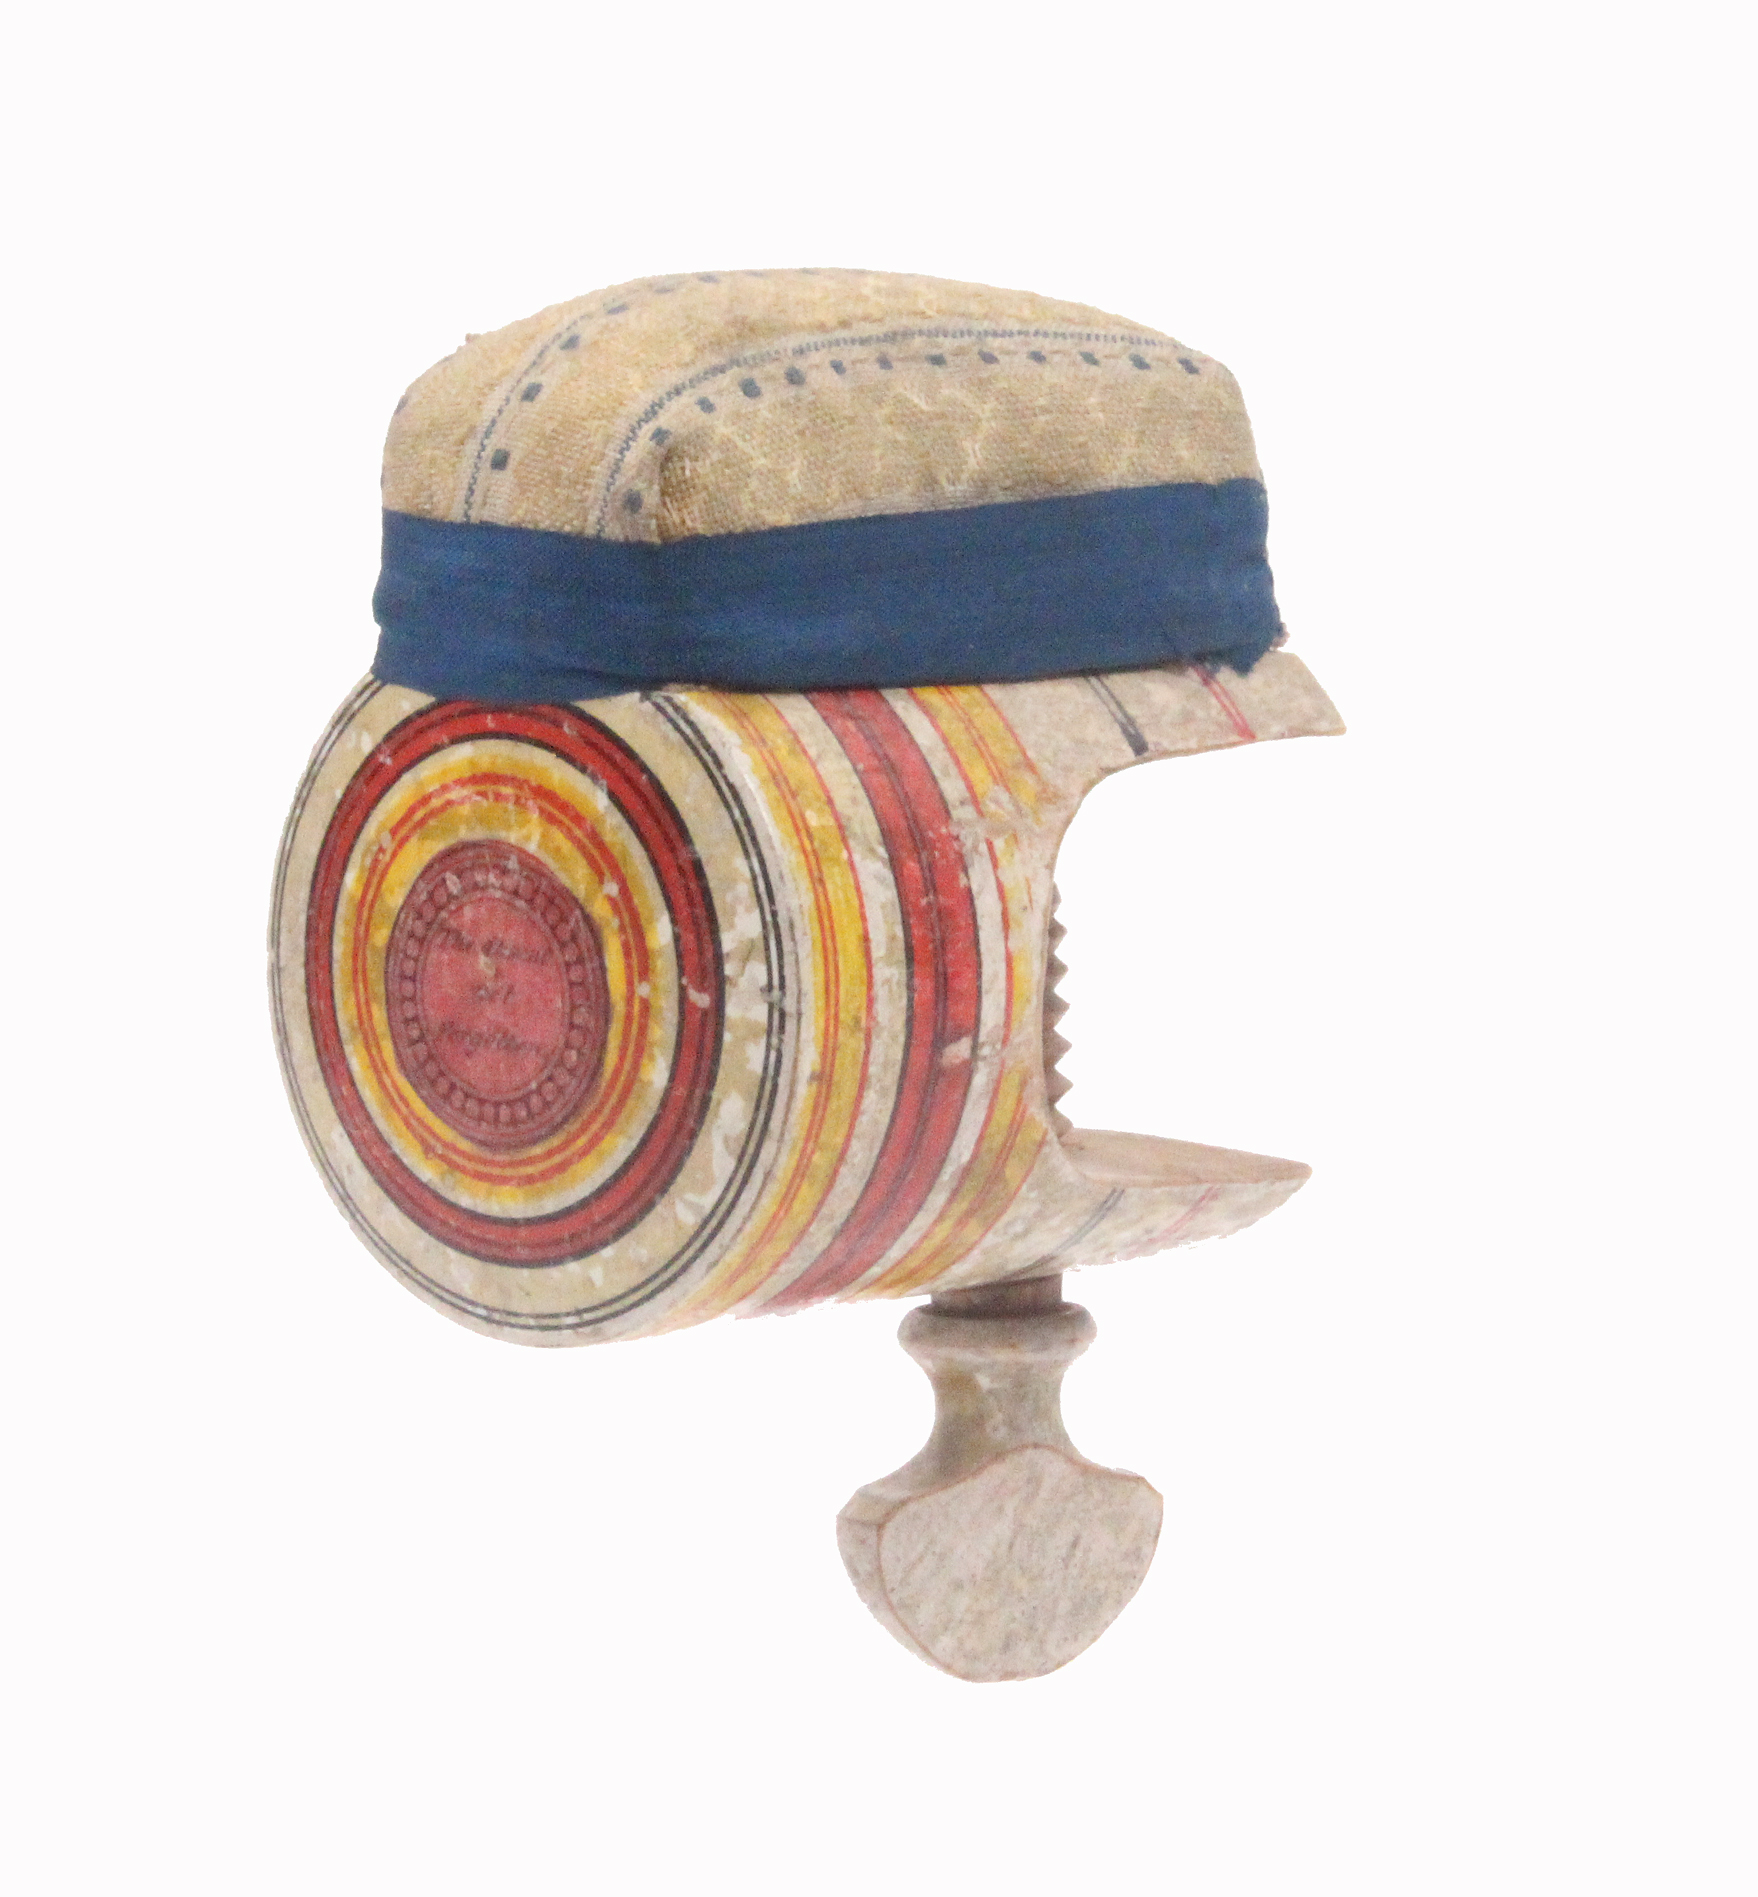 Lot 32 - A painted Tunbridge ware sewing clamp, of cylinder form below a pin cushion top, the roundel painted